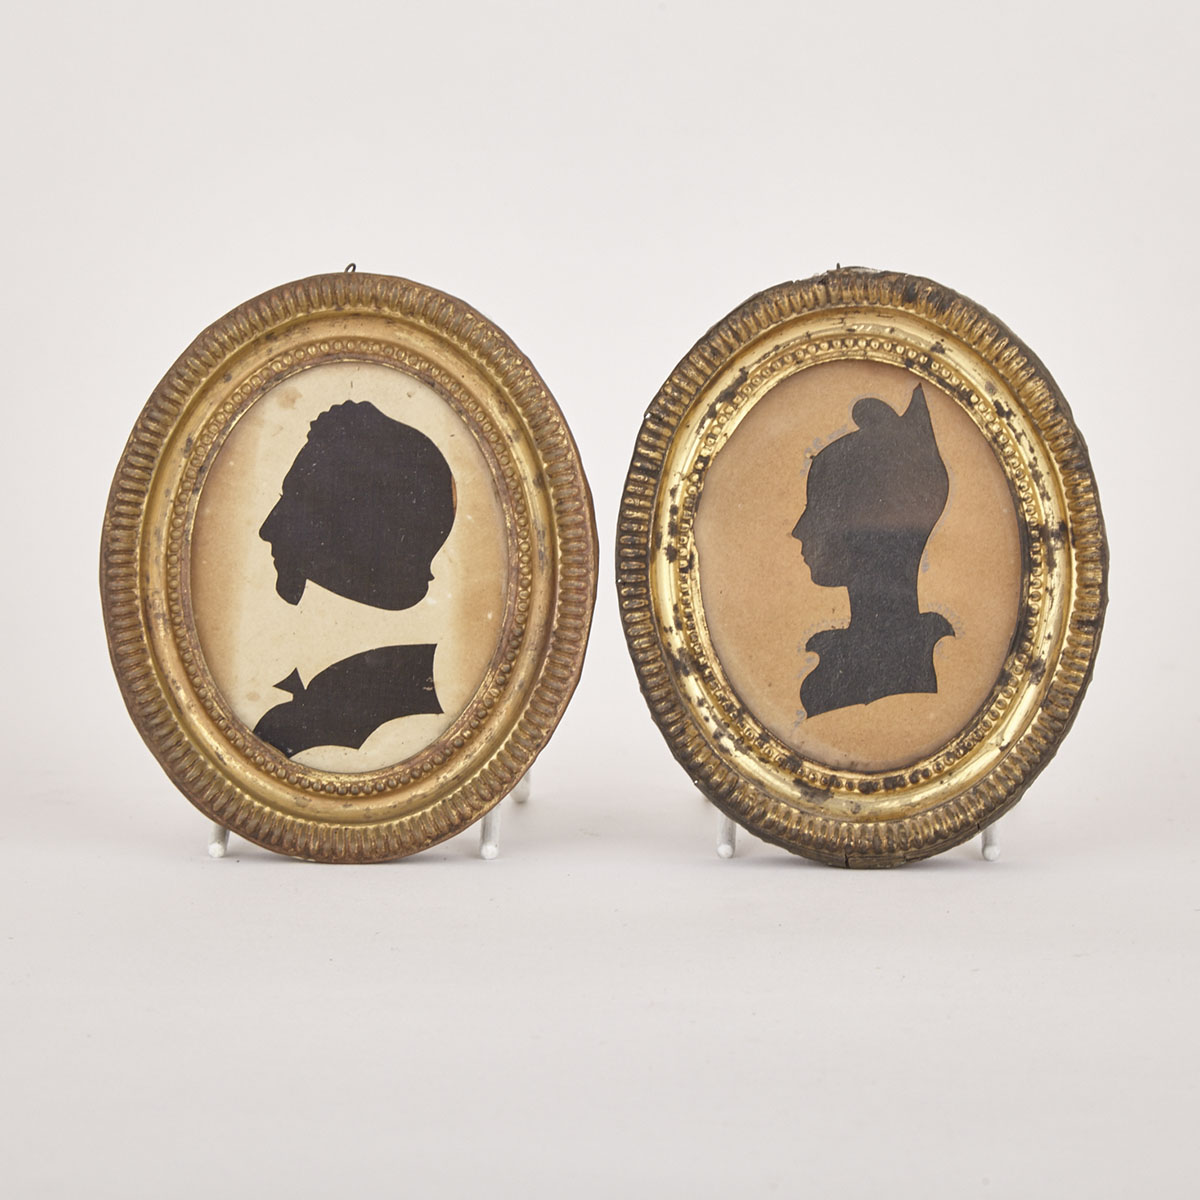 Pair of Regency Silhouette Portrait Ovals, early 19th century